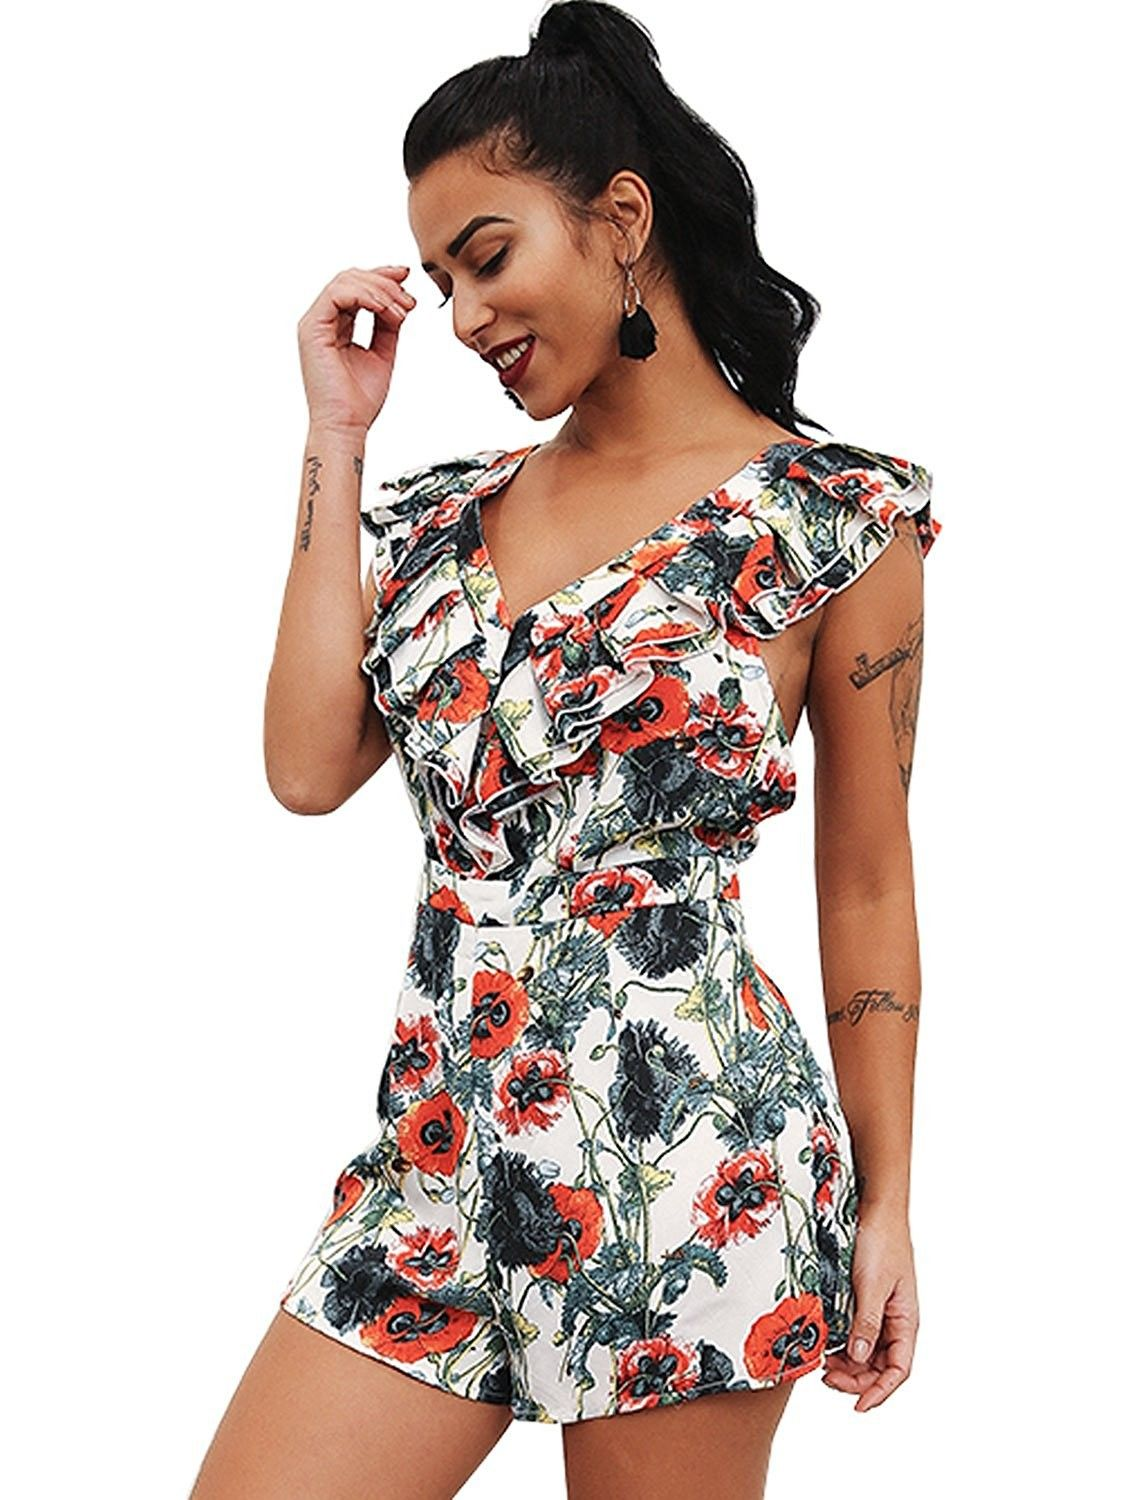 Women s Sexy V Neck Backless Floral Short Rompers Ruffles Jumpsuit - Print  - CP189Z6ZHH8 ba082fb51c23